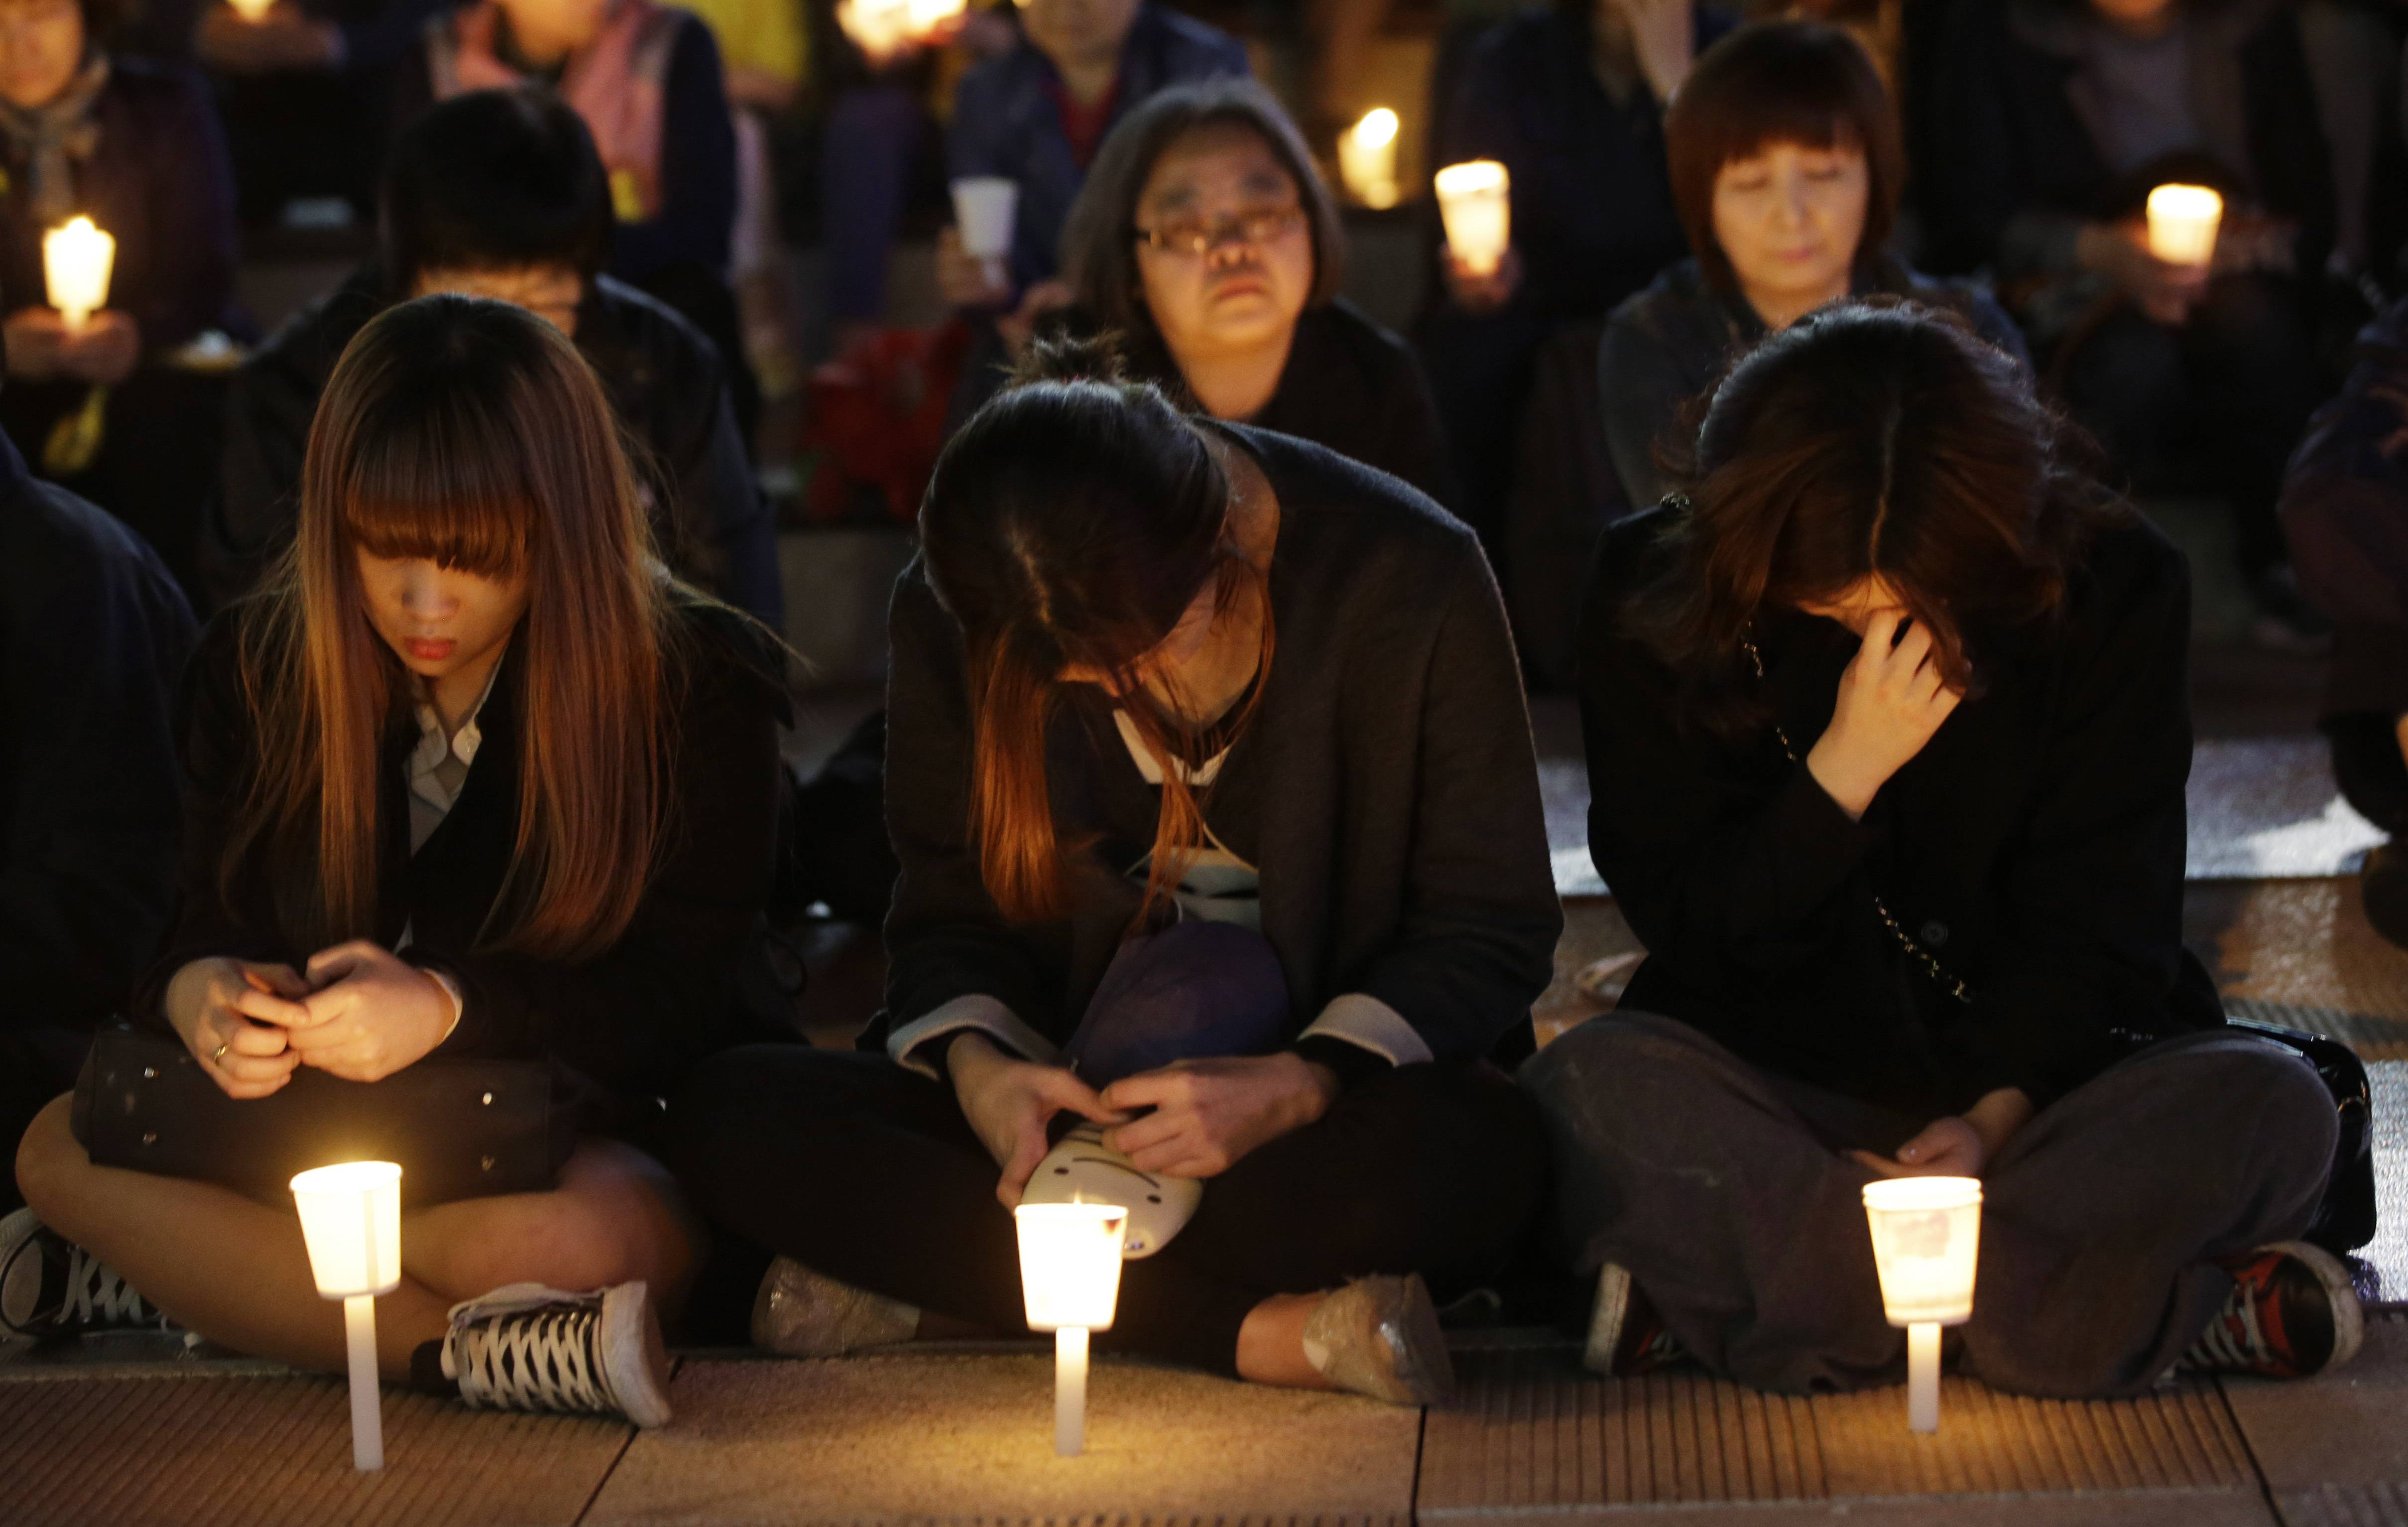 S. Korea: We mismatched bodies from ferry disaster